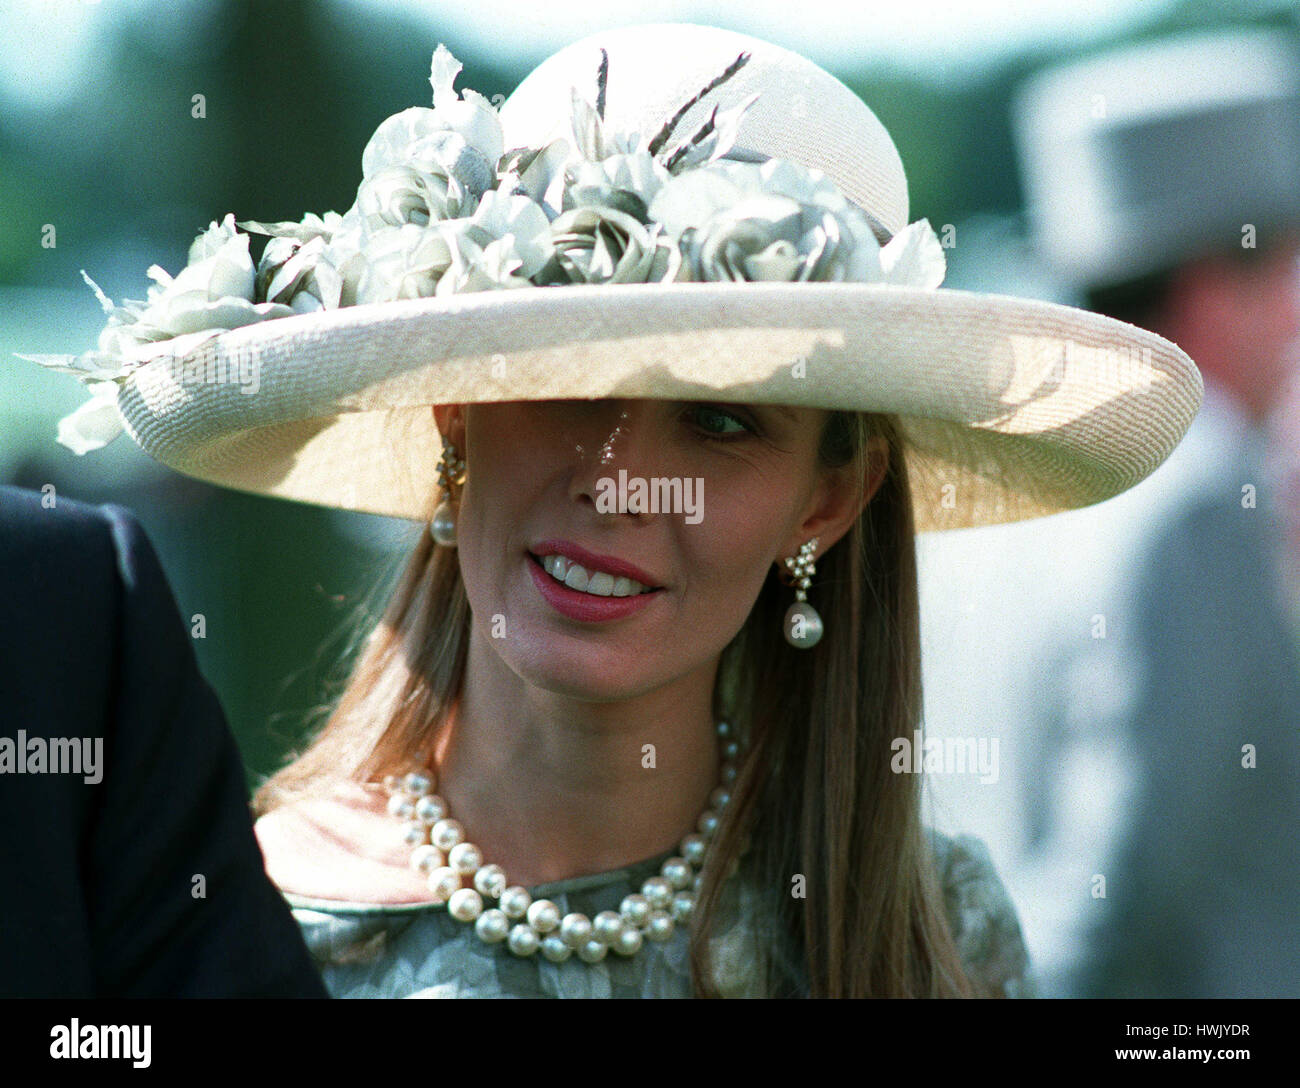 SUSAN SANGSTER WIFE OF ROBERT SANGSTER 30 June 1993 Stock Photo